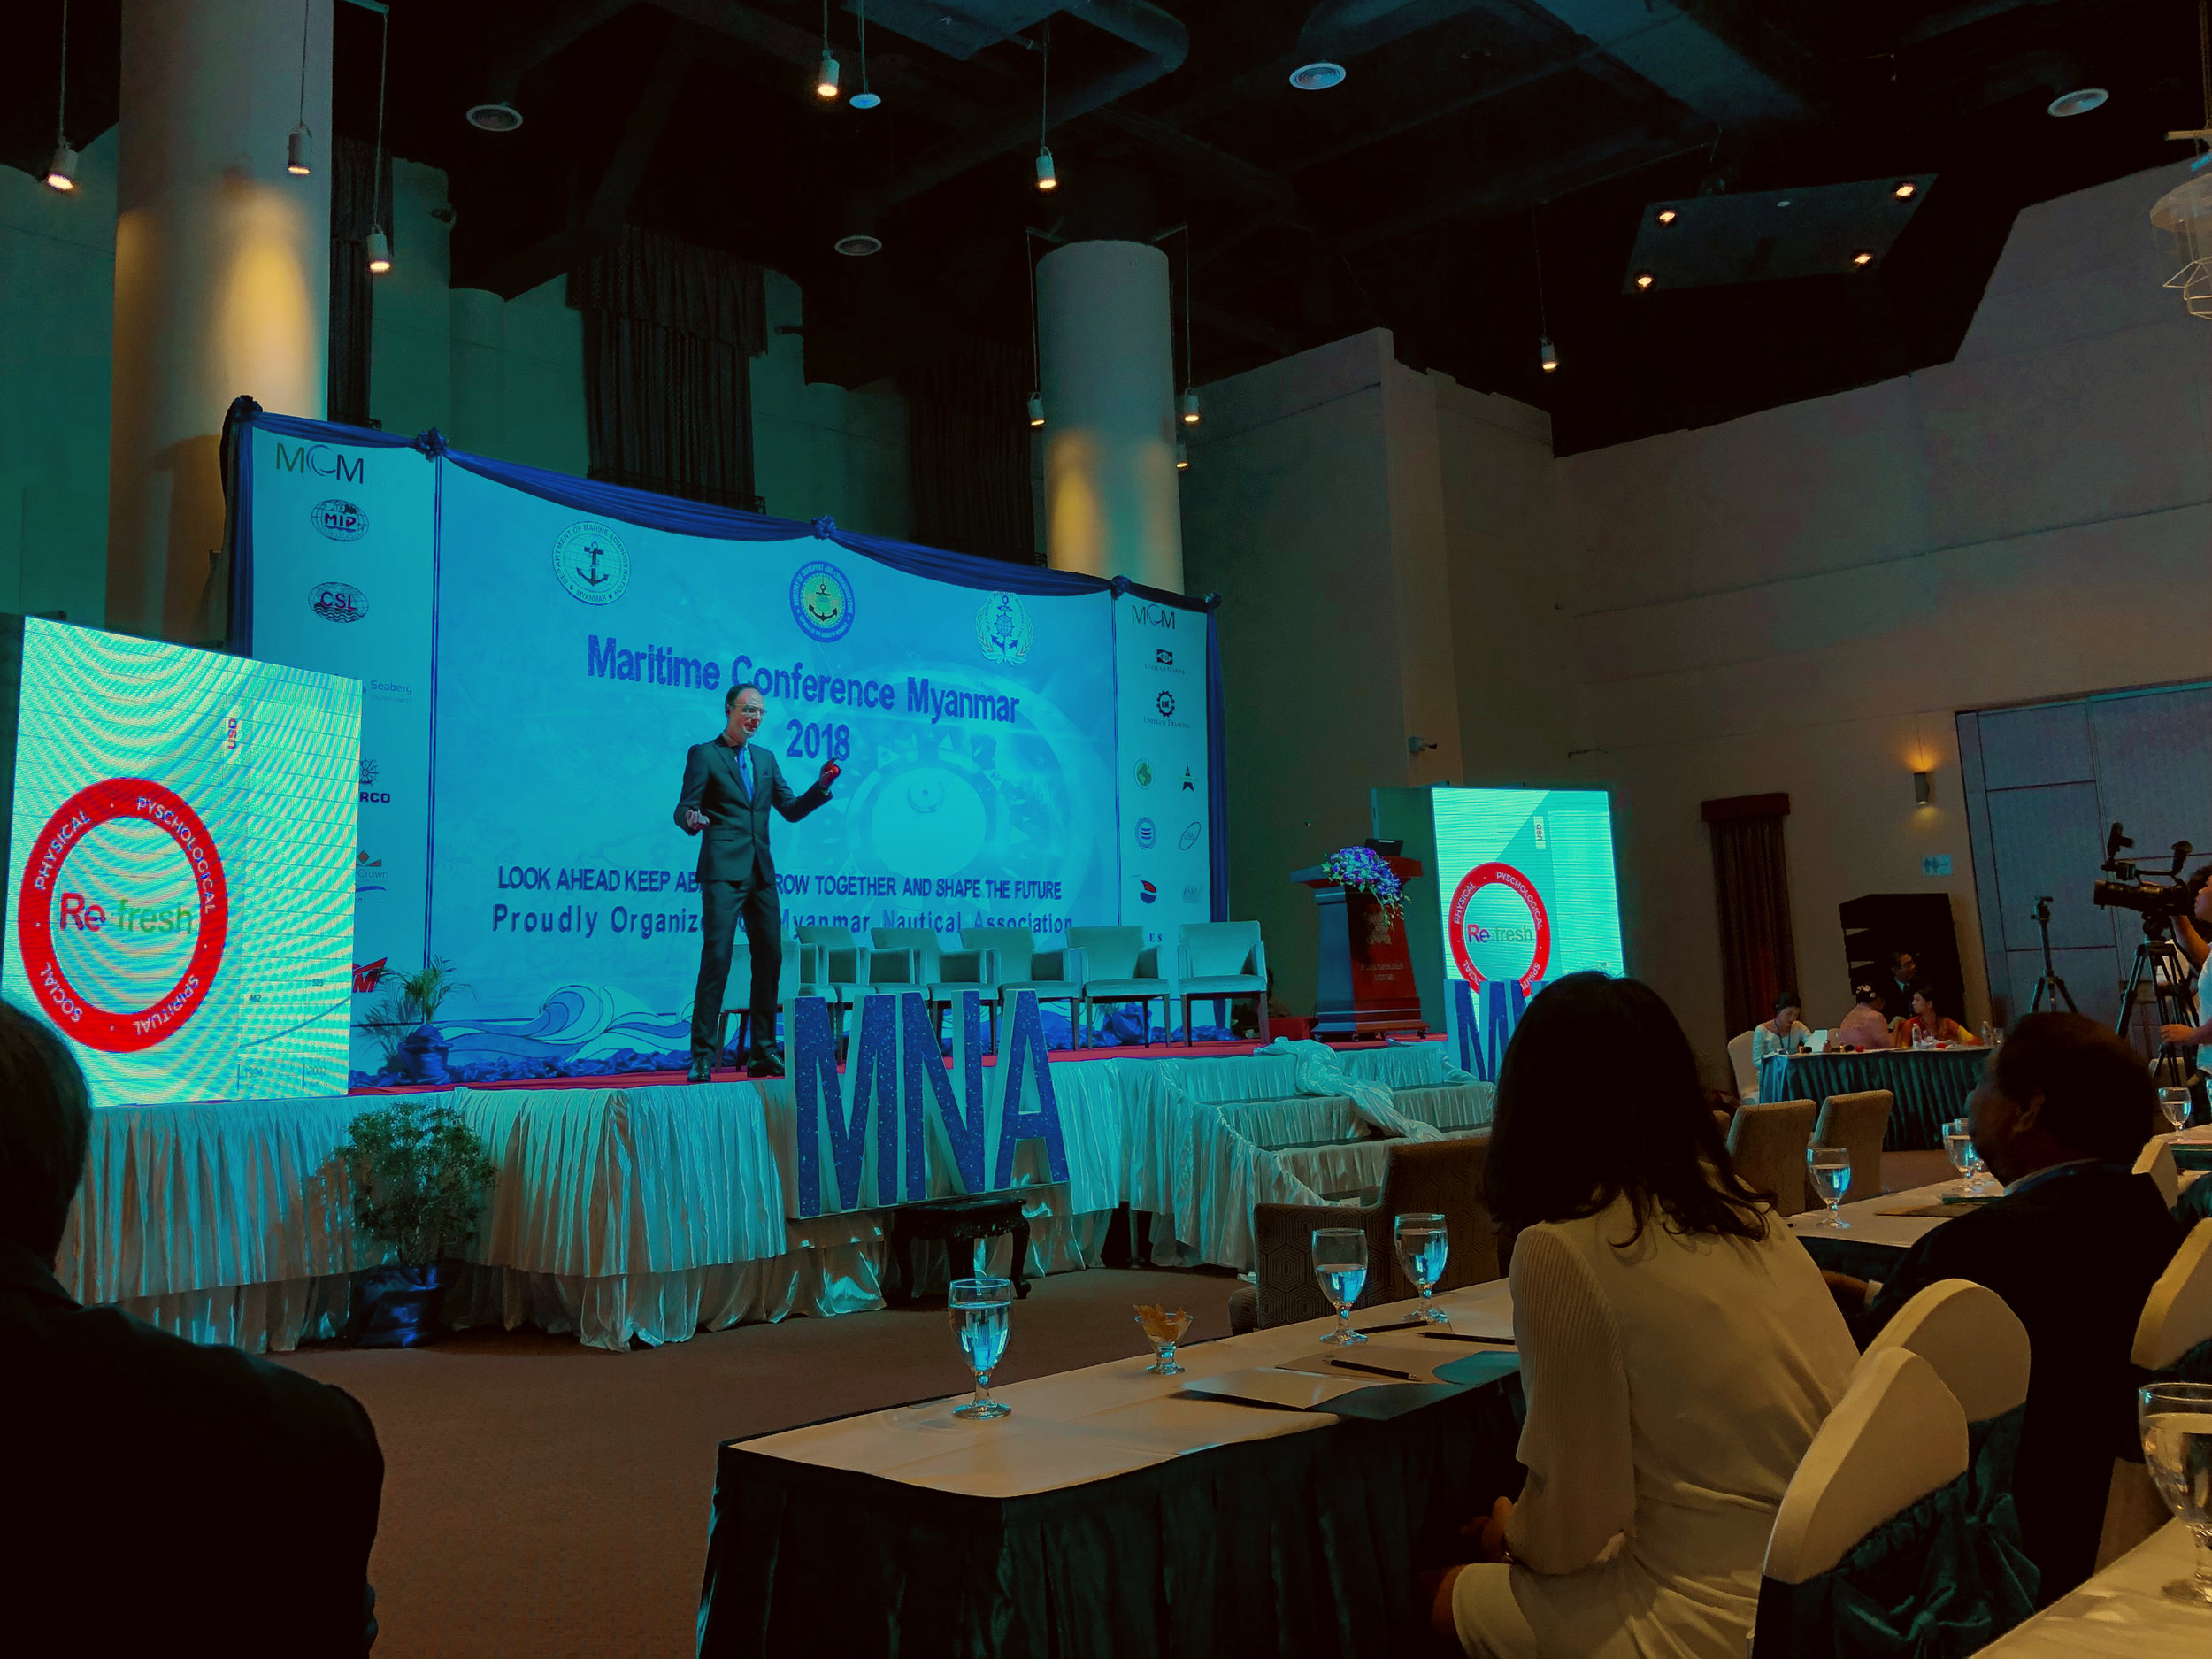 President Adrian Stray Presenting Refresh at the Maritime Conference Myanmar (Yangon, 2018)